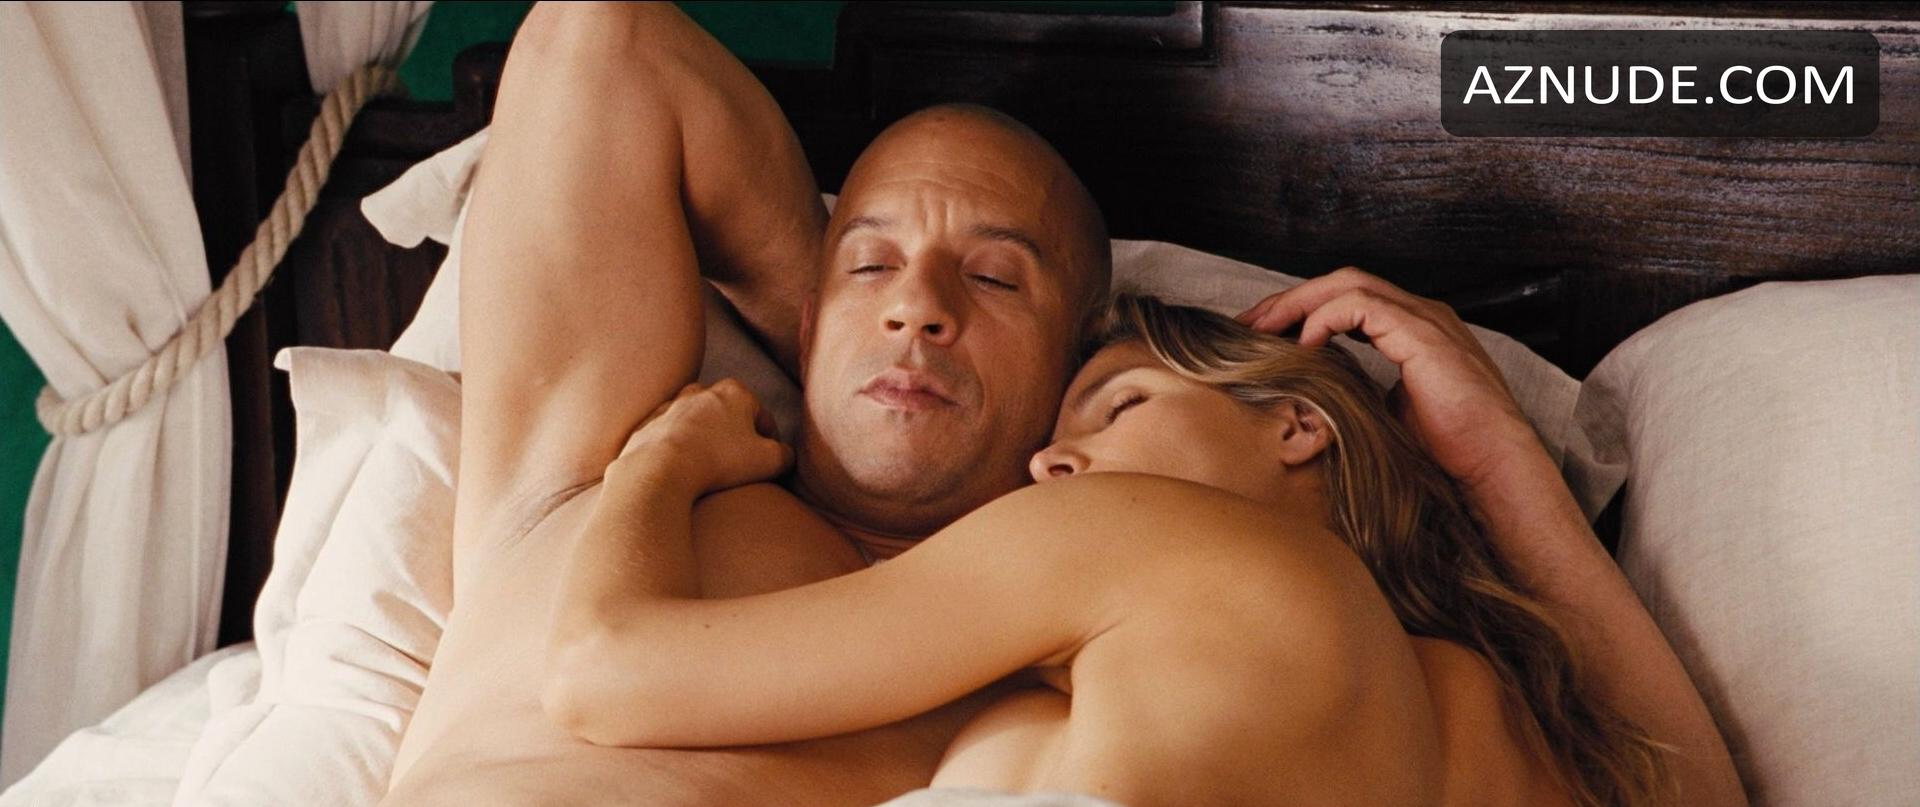 Real Brother And Sister Porn Movies